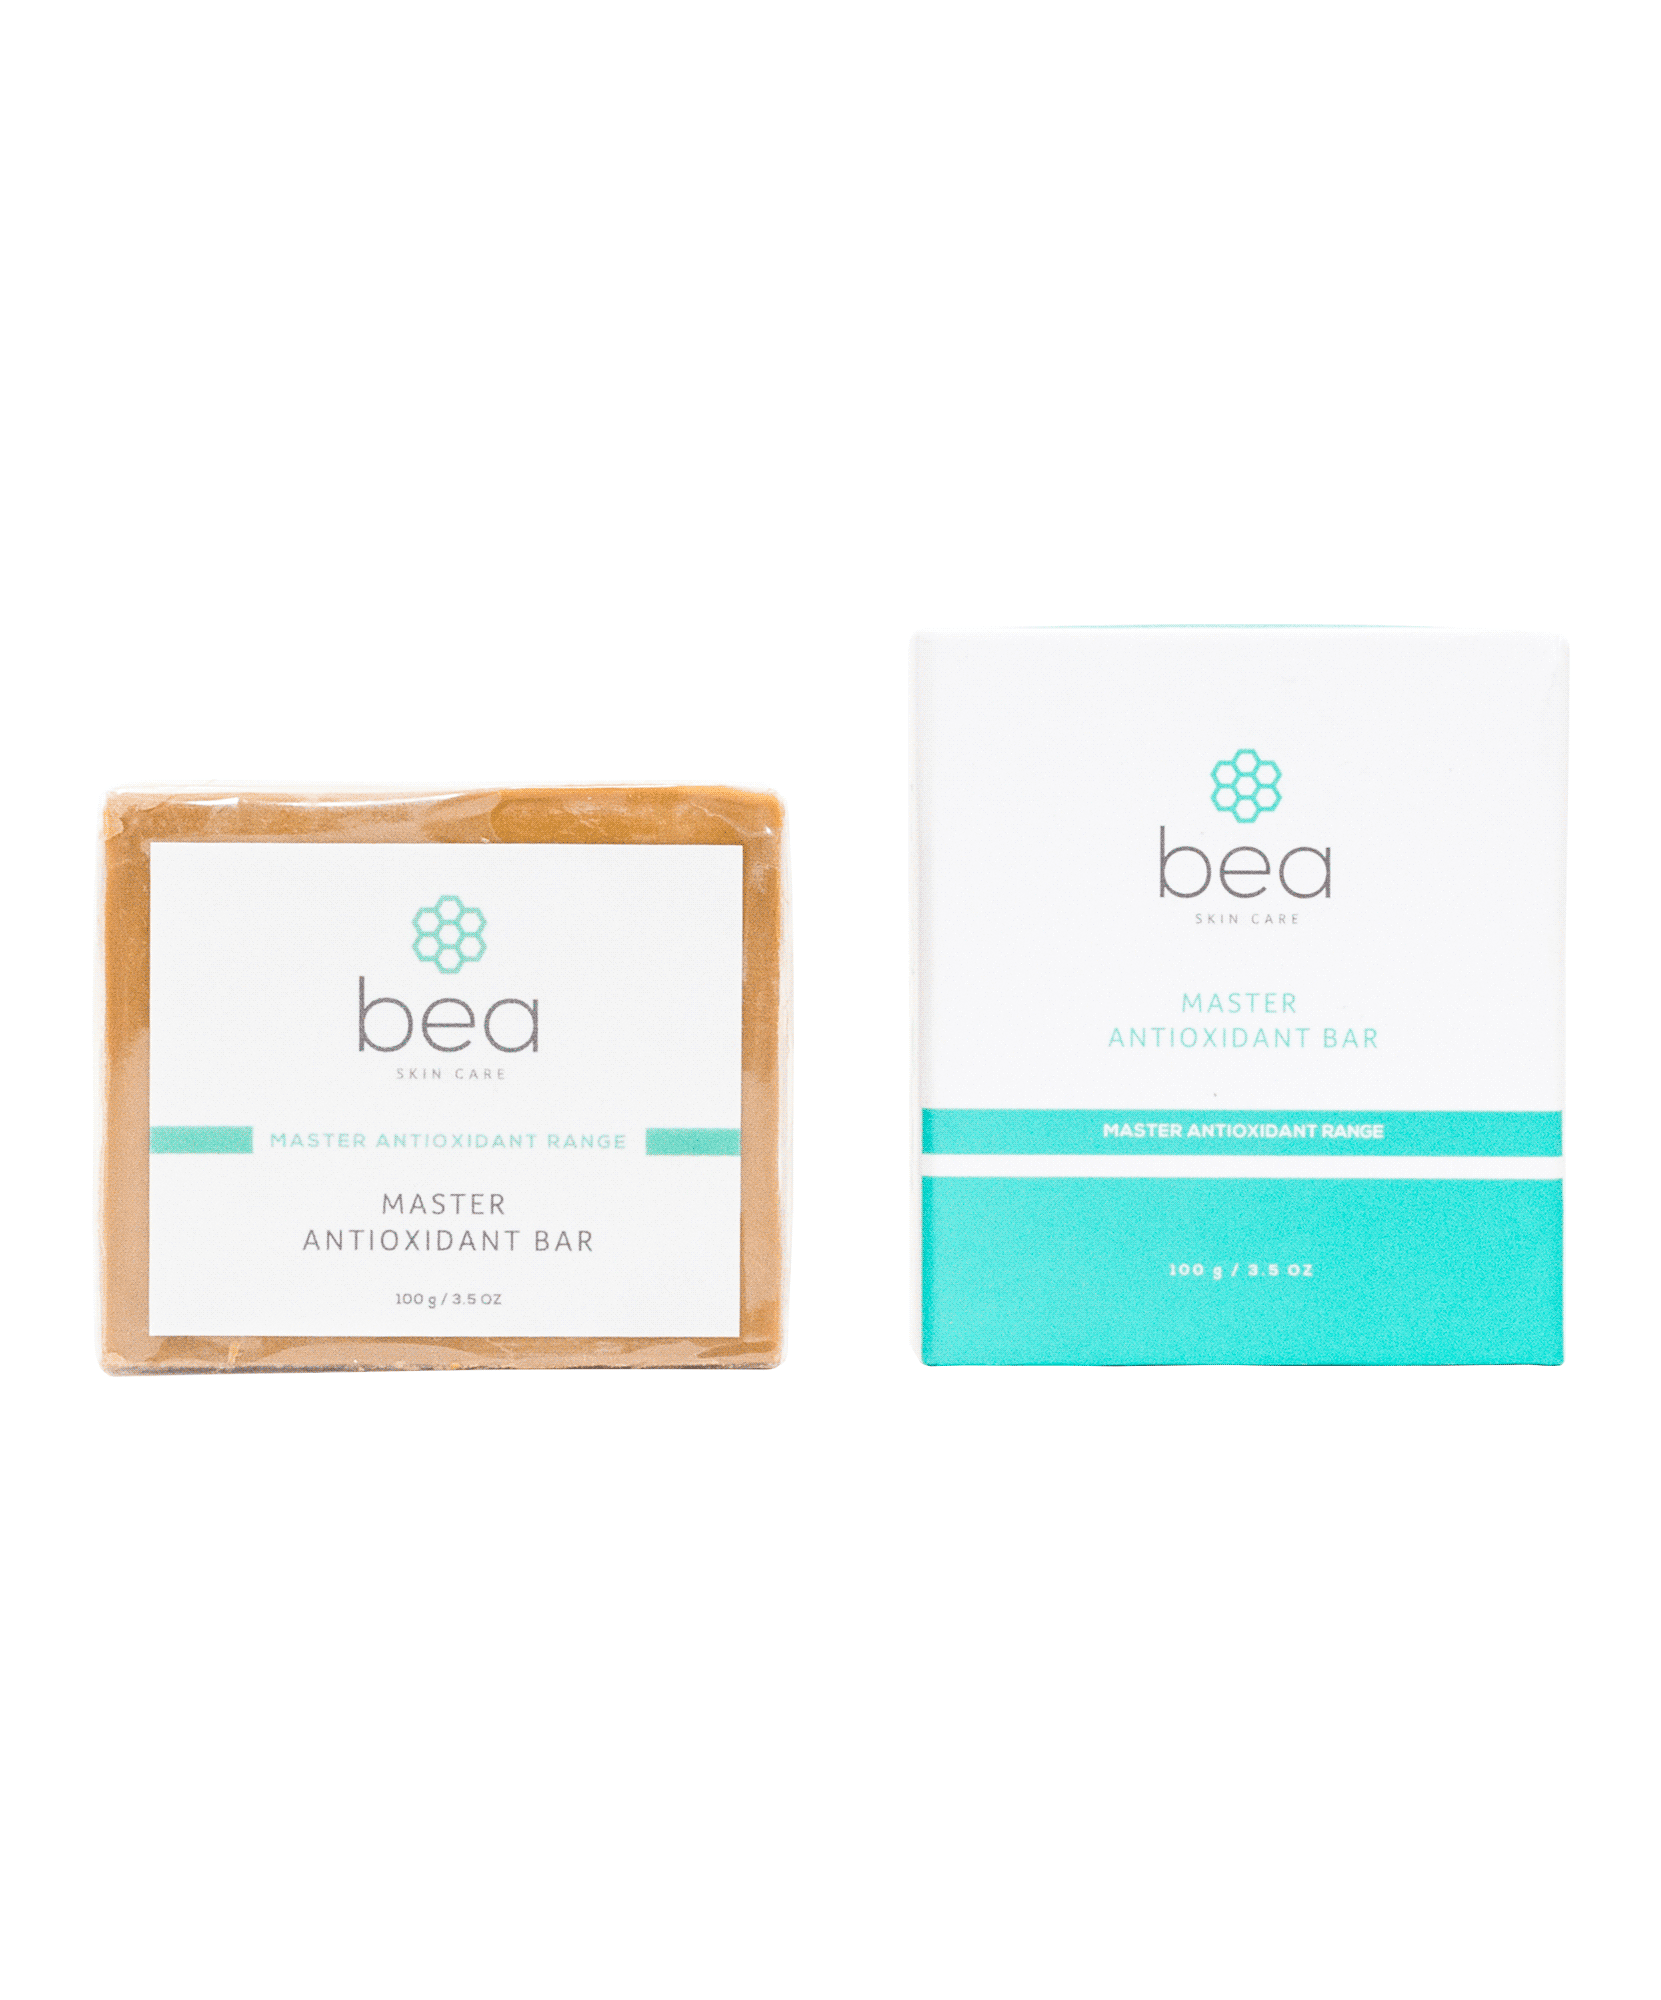 Master Antioxidant Bar - 100 g Wash Bar bea Skin Care